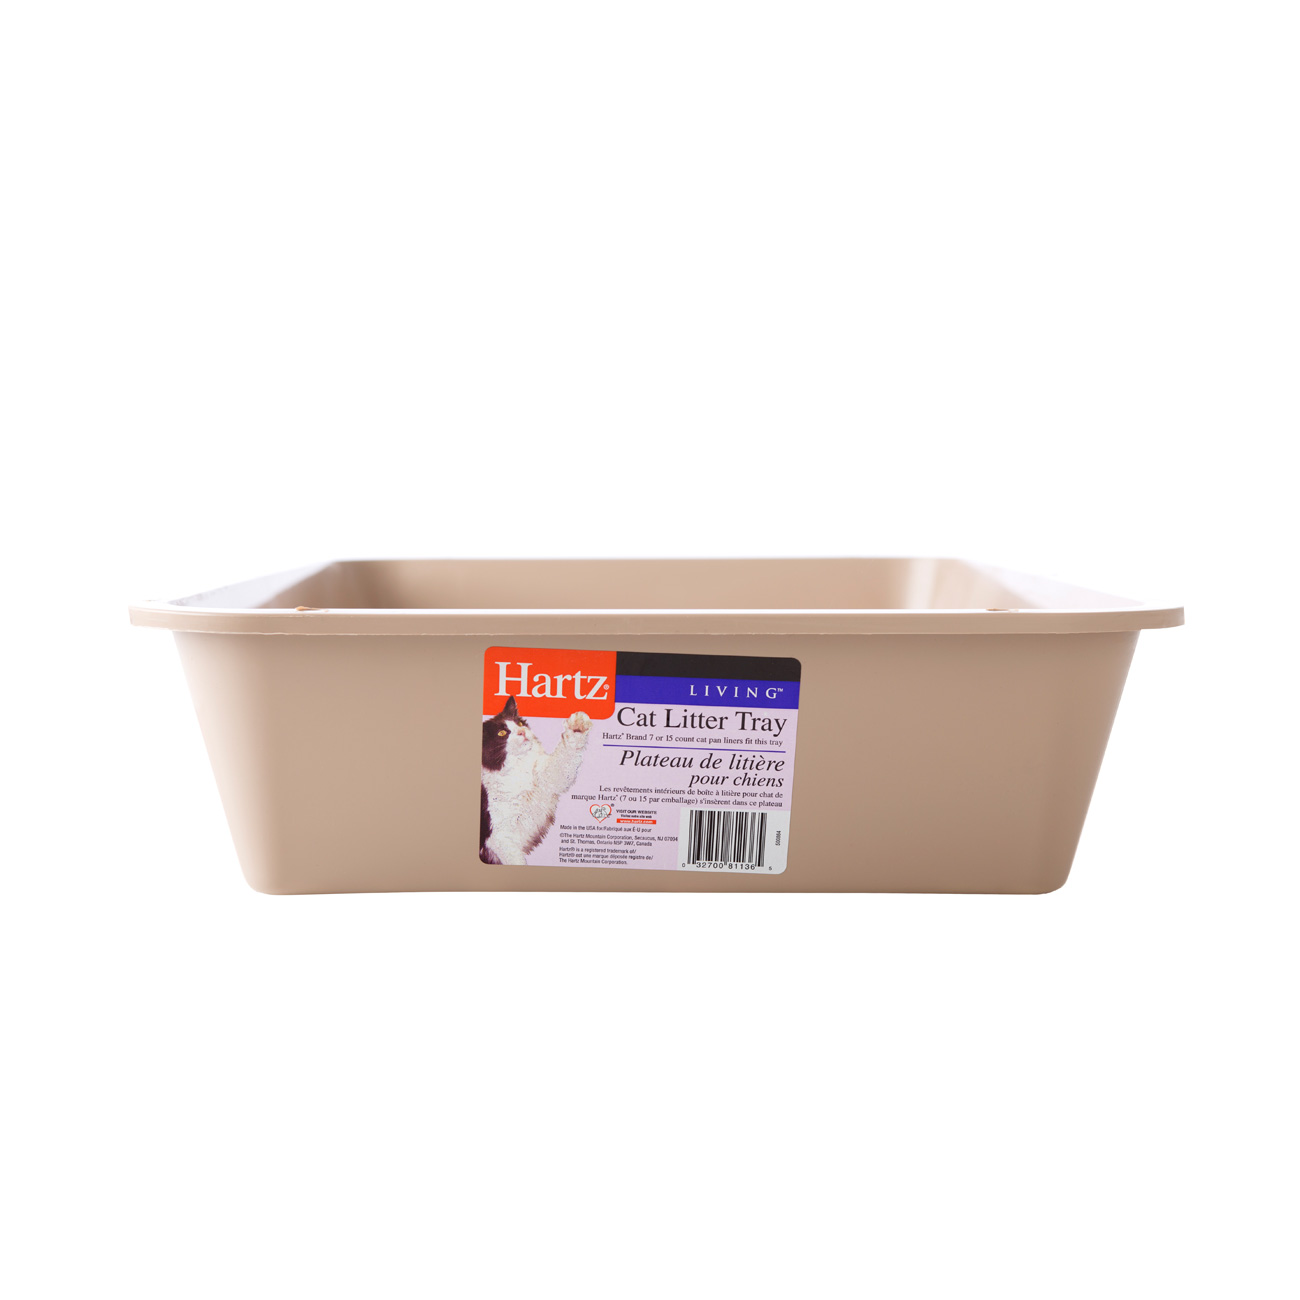 A beige litterbox or tray for cats, Hartz SKU 3270081136